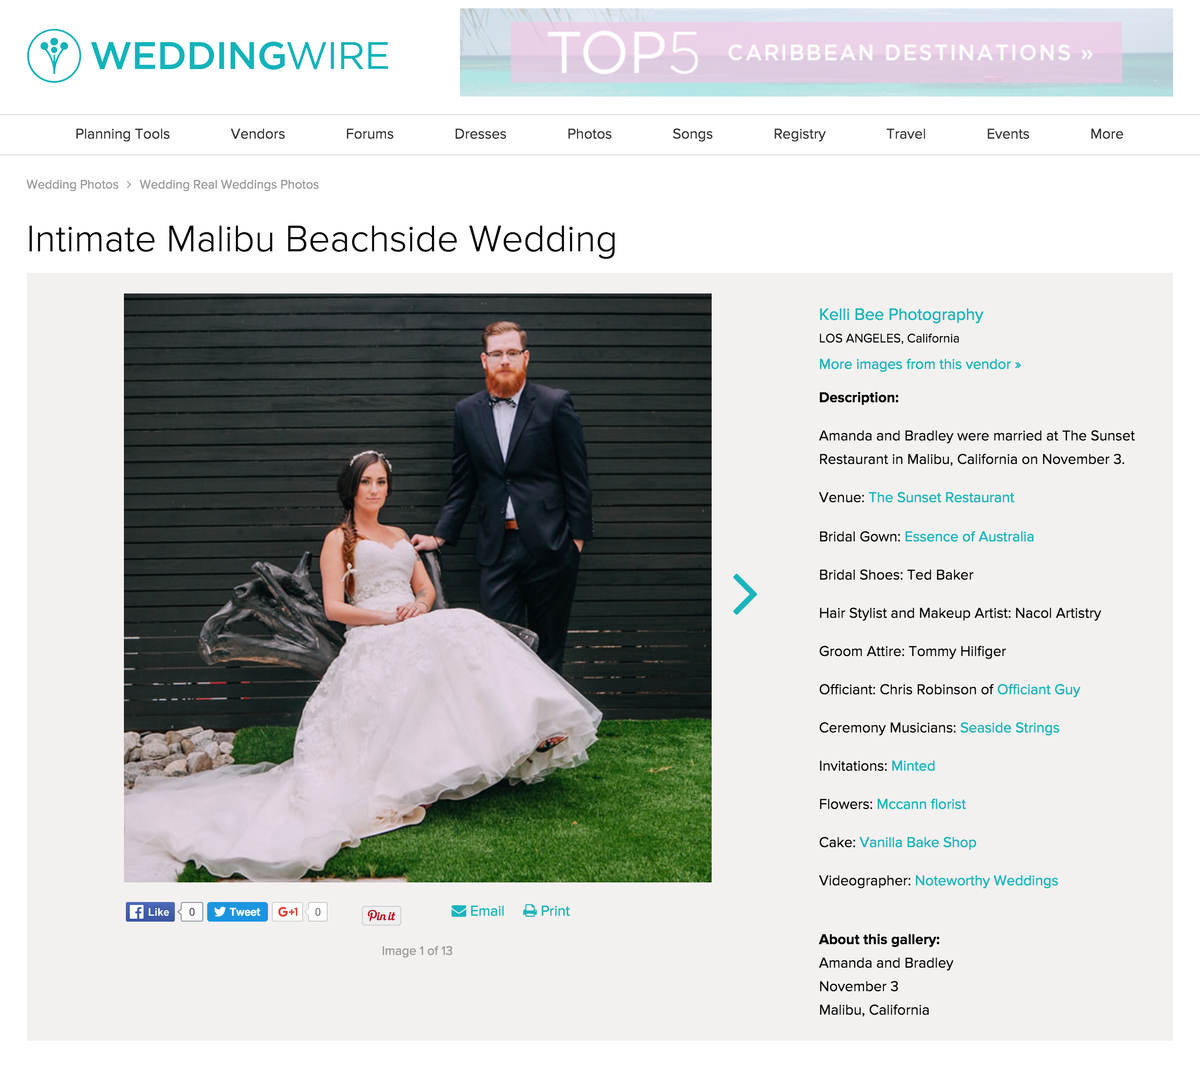 PRESS_NW2016_AmandaBradWedding_WW